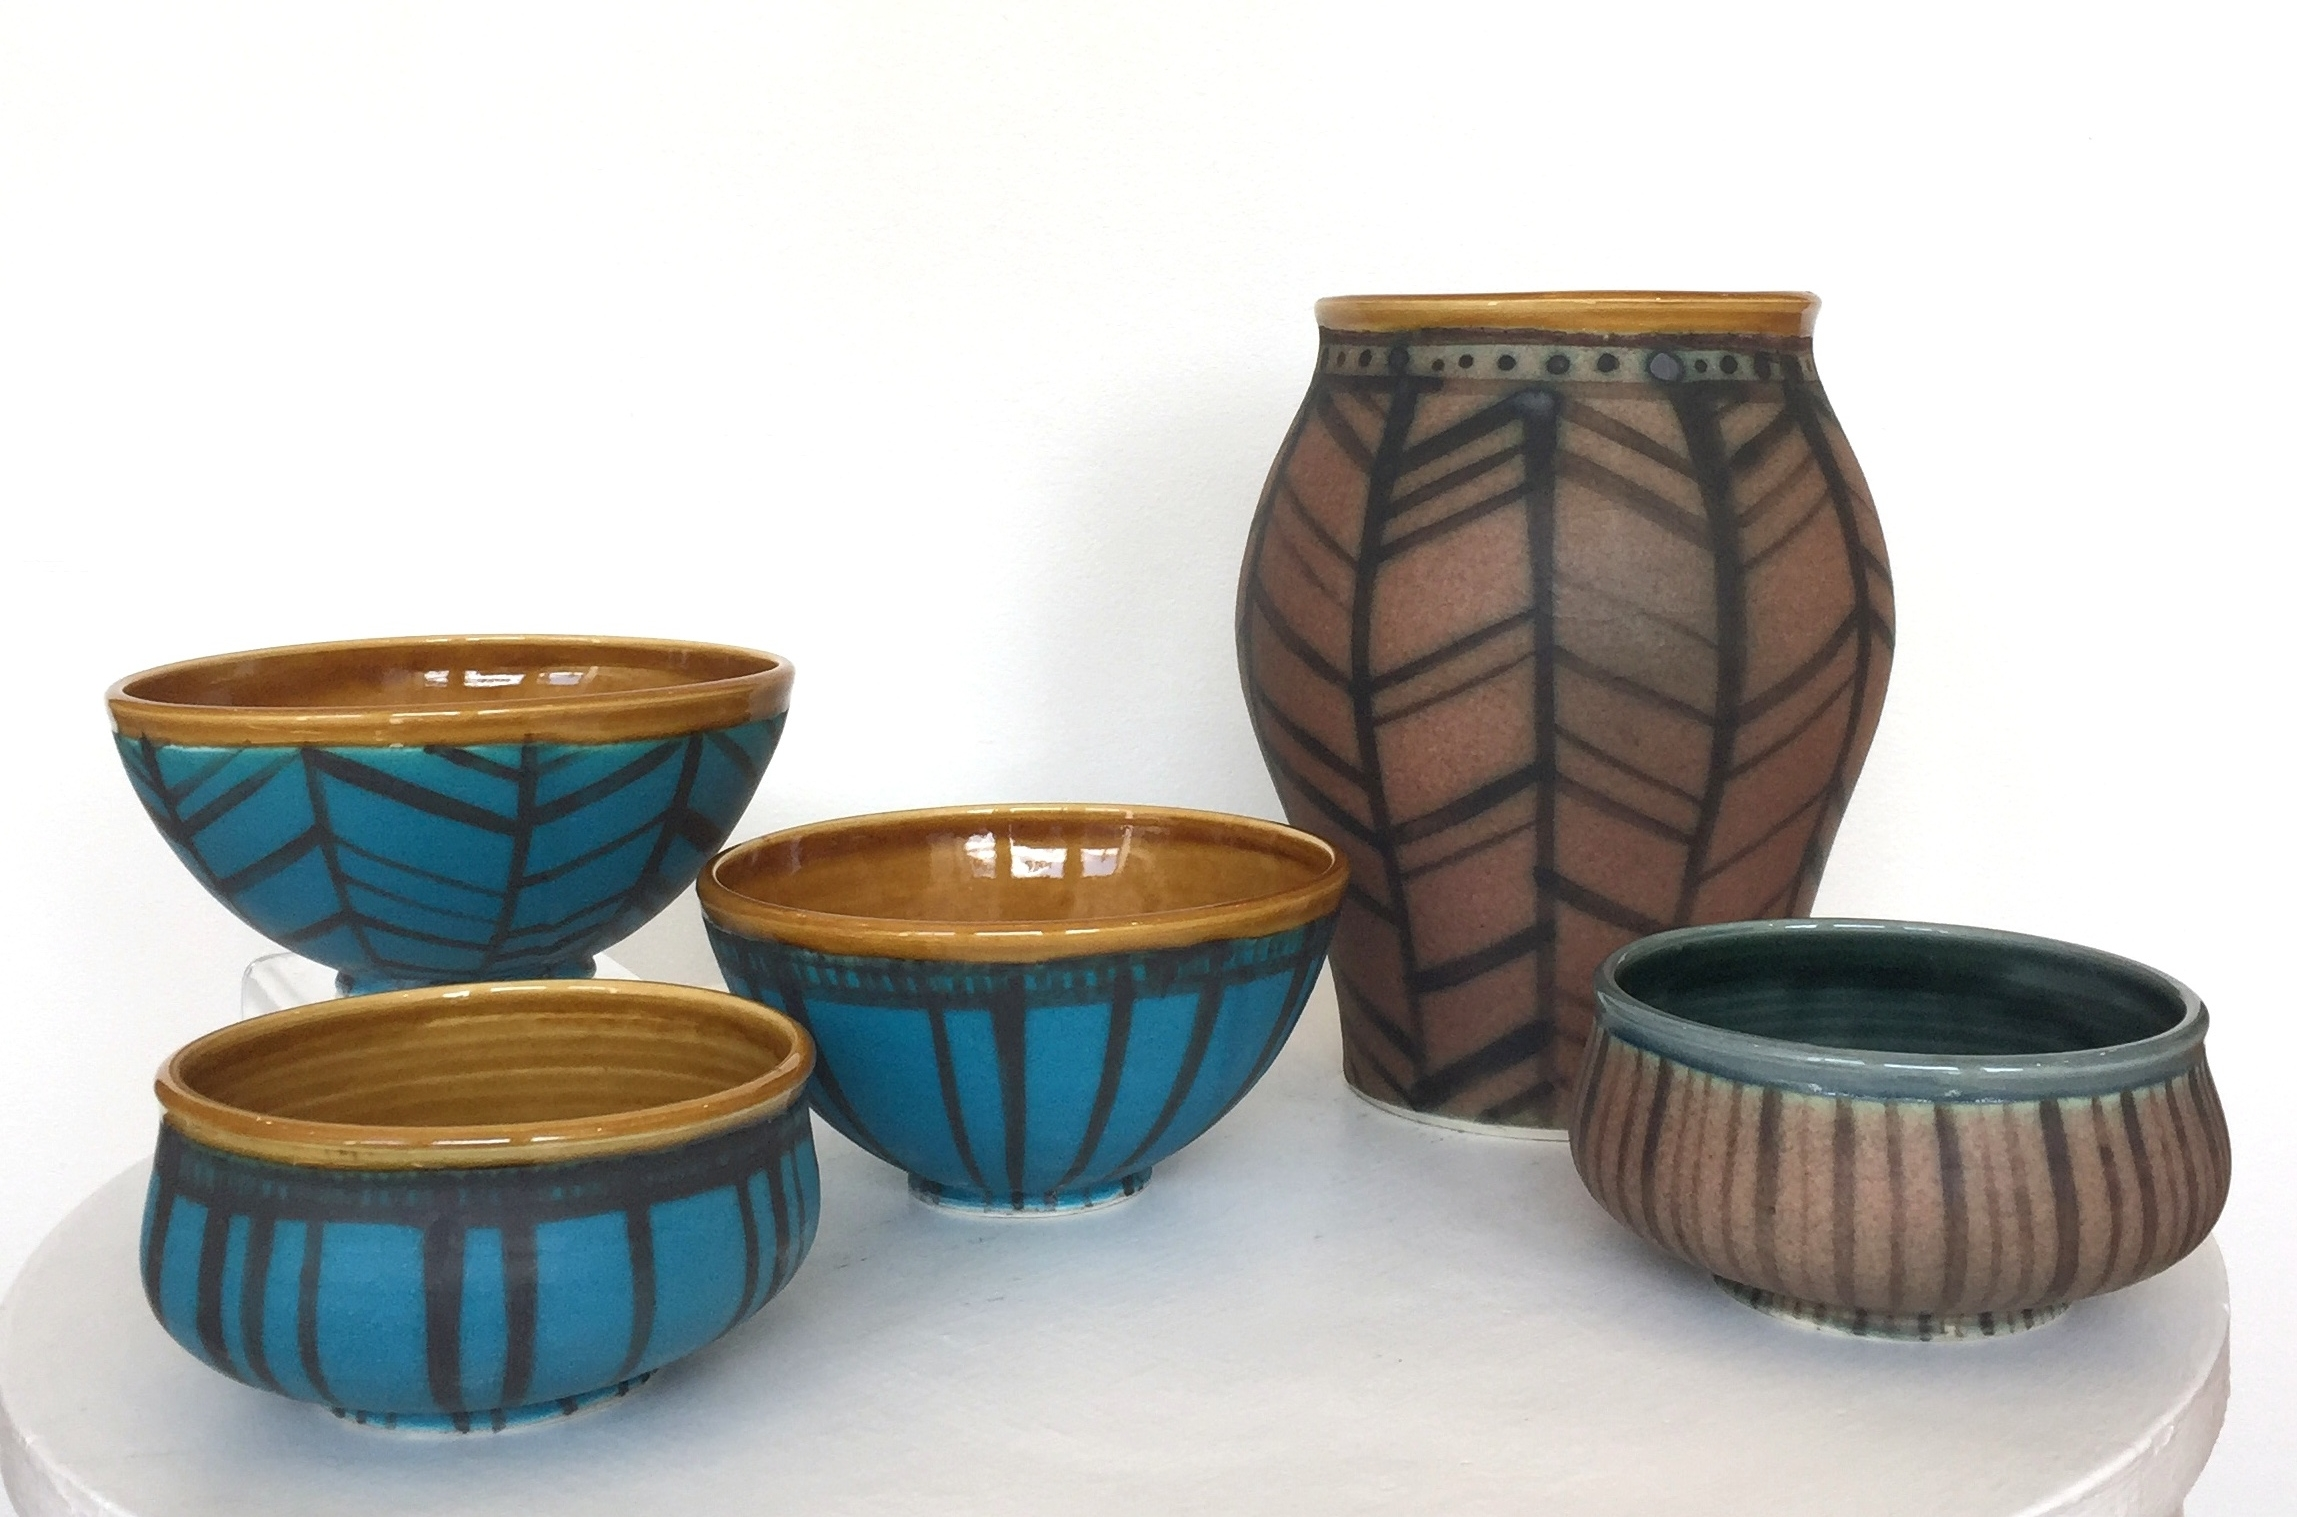 Ceramic vase and bowls, herringbone and stripe patterns, $38-$175